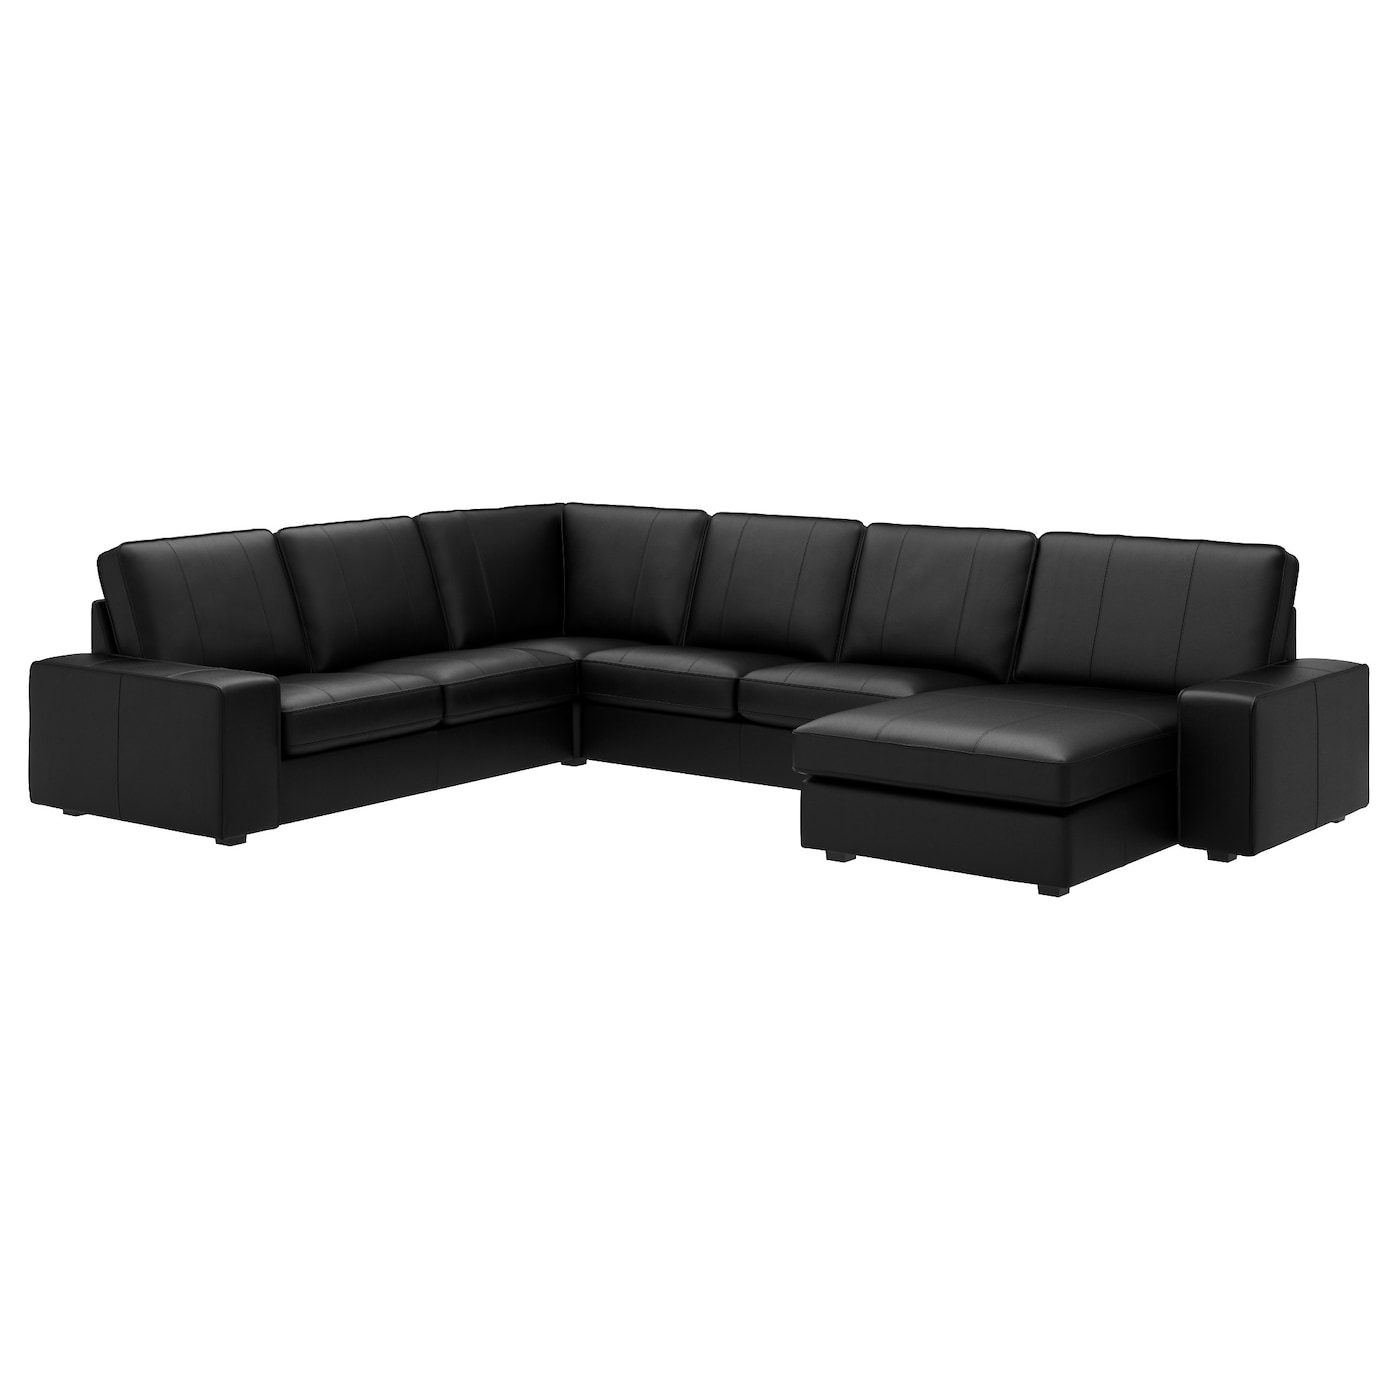 Eckcouch modern  Leather & Coated Fabric Sofas | IKEA